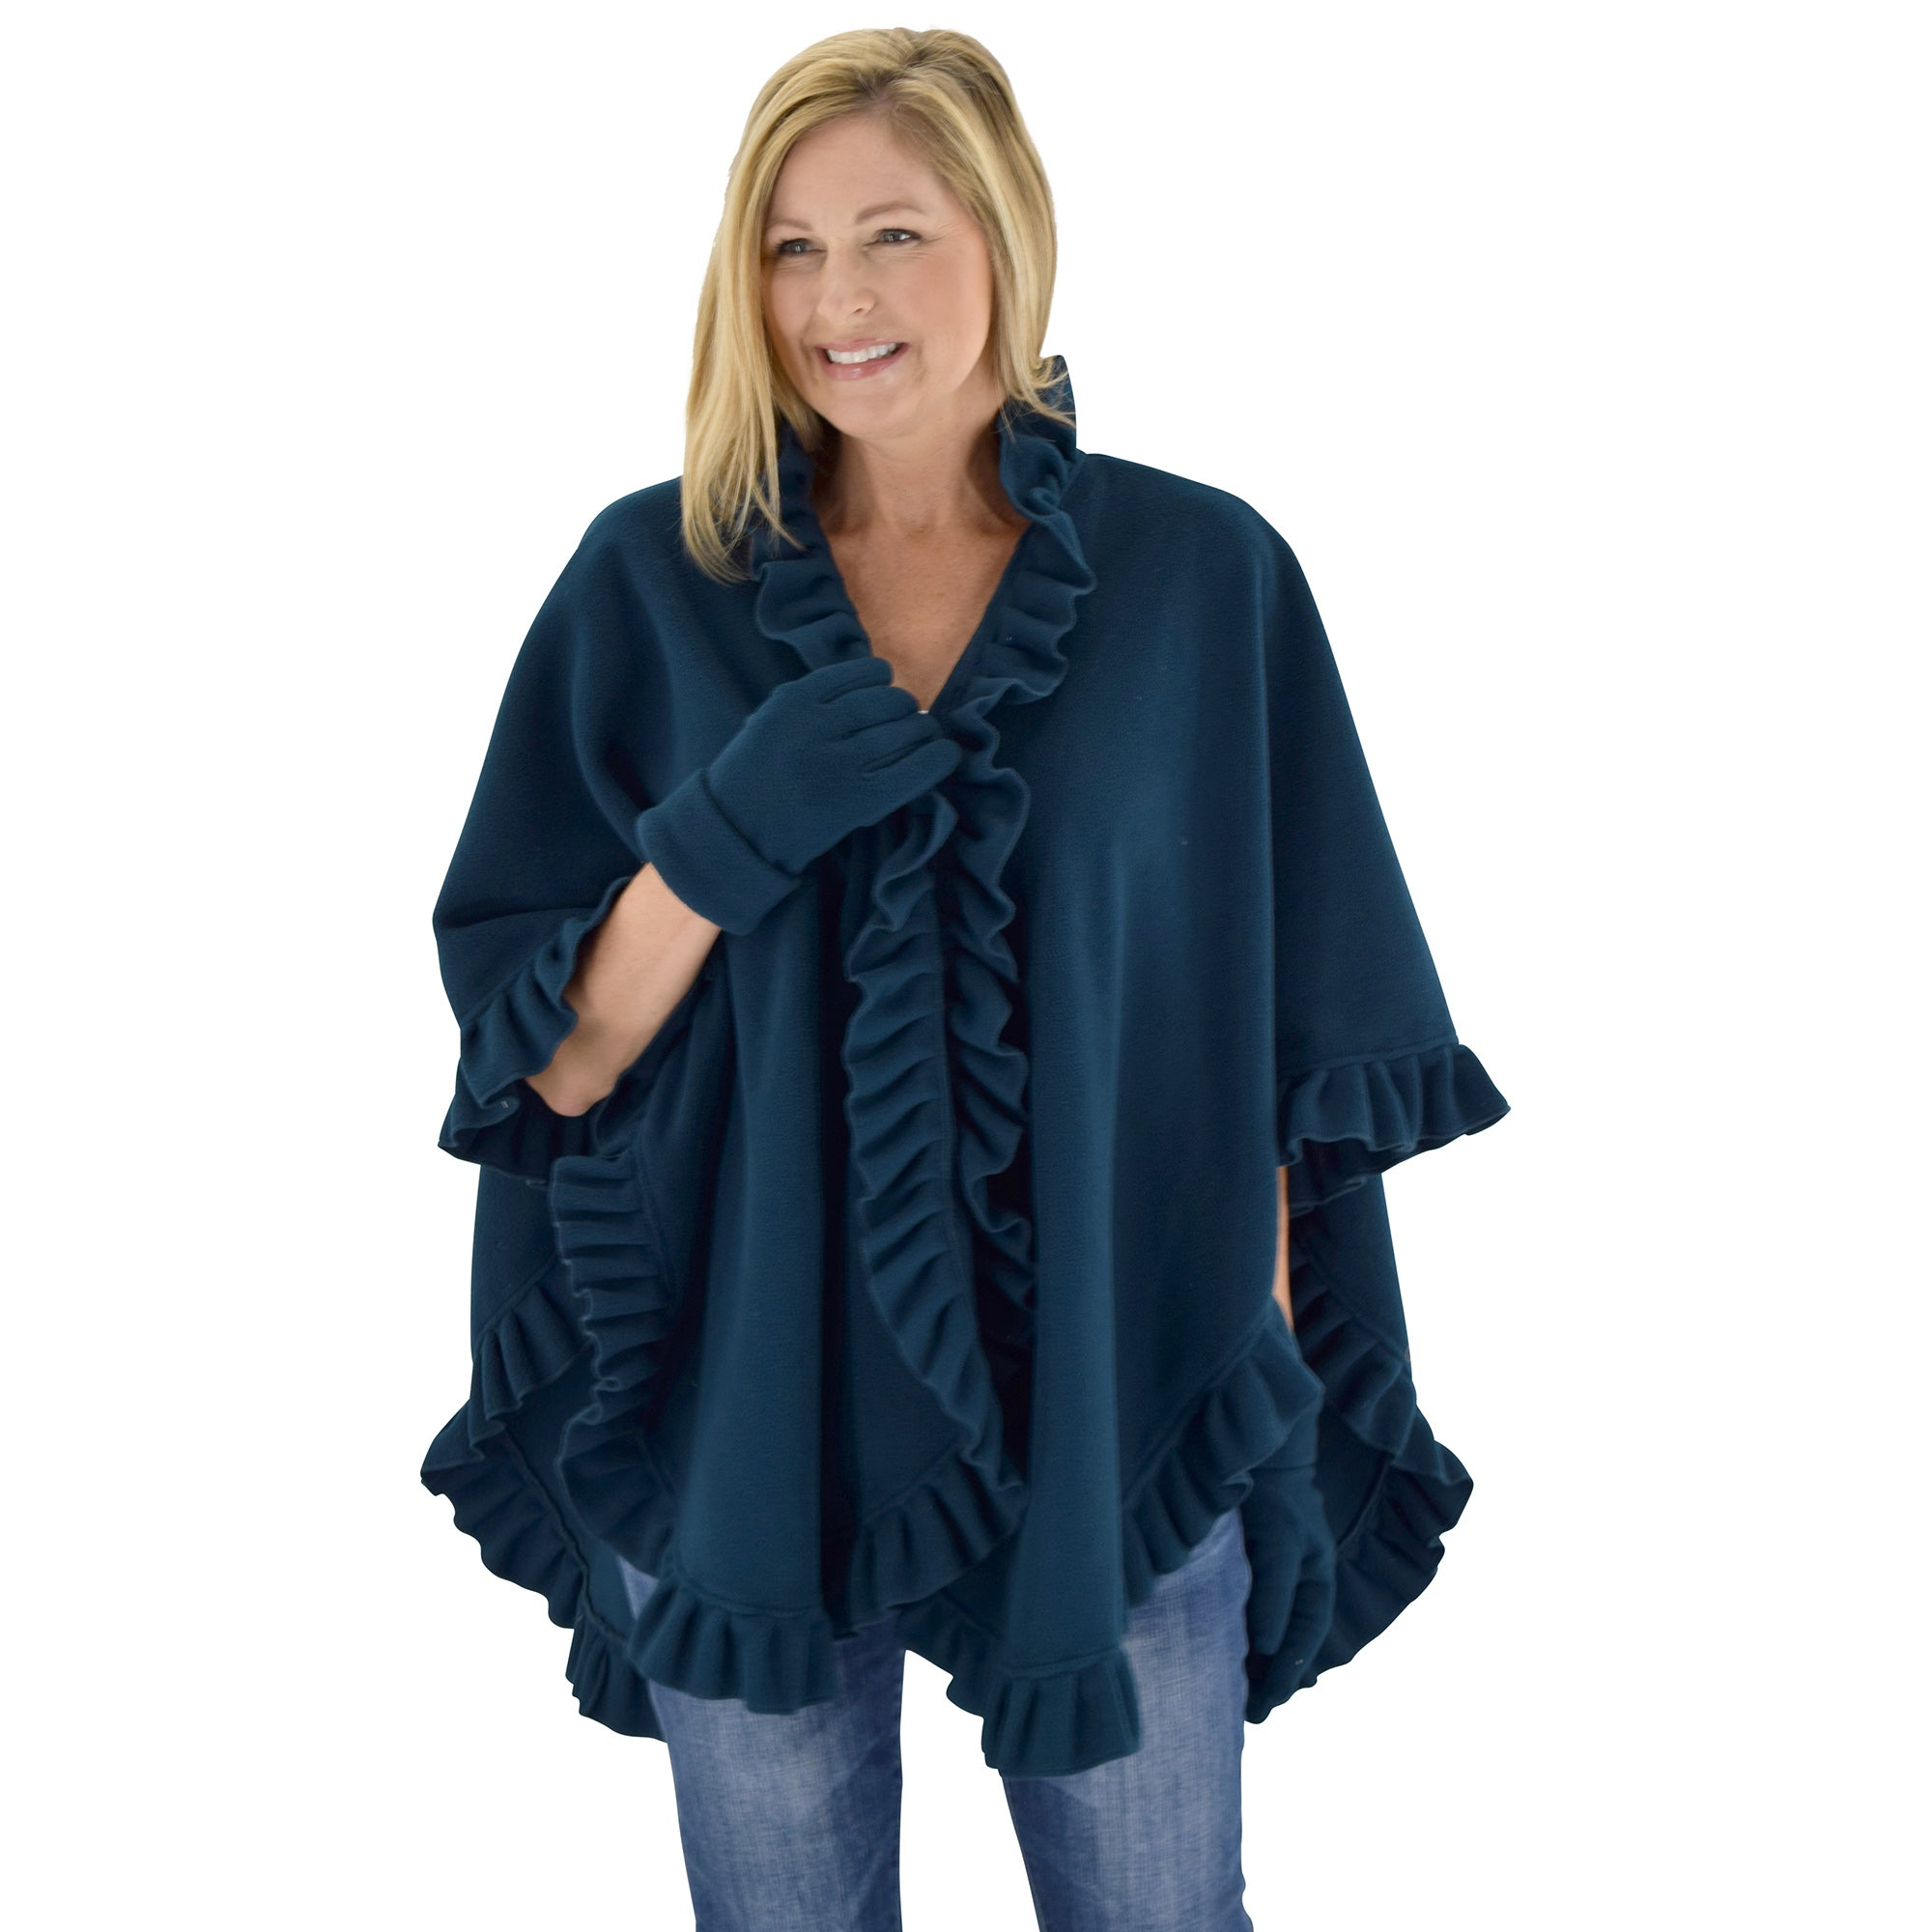 Le Moda Women's Frilled Solid Color Fleece Poncho Shawl with Matching Gloves at Linda Anderson. color_teal